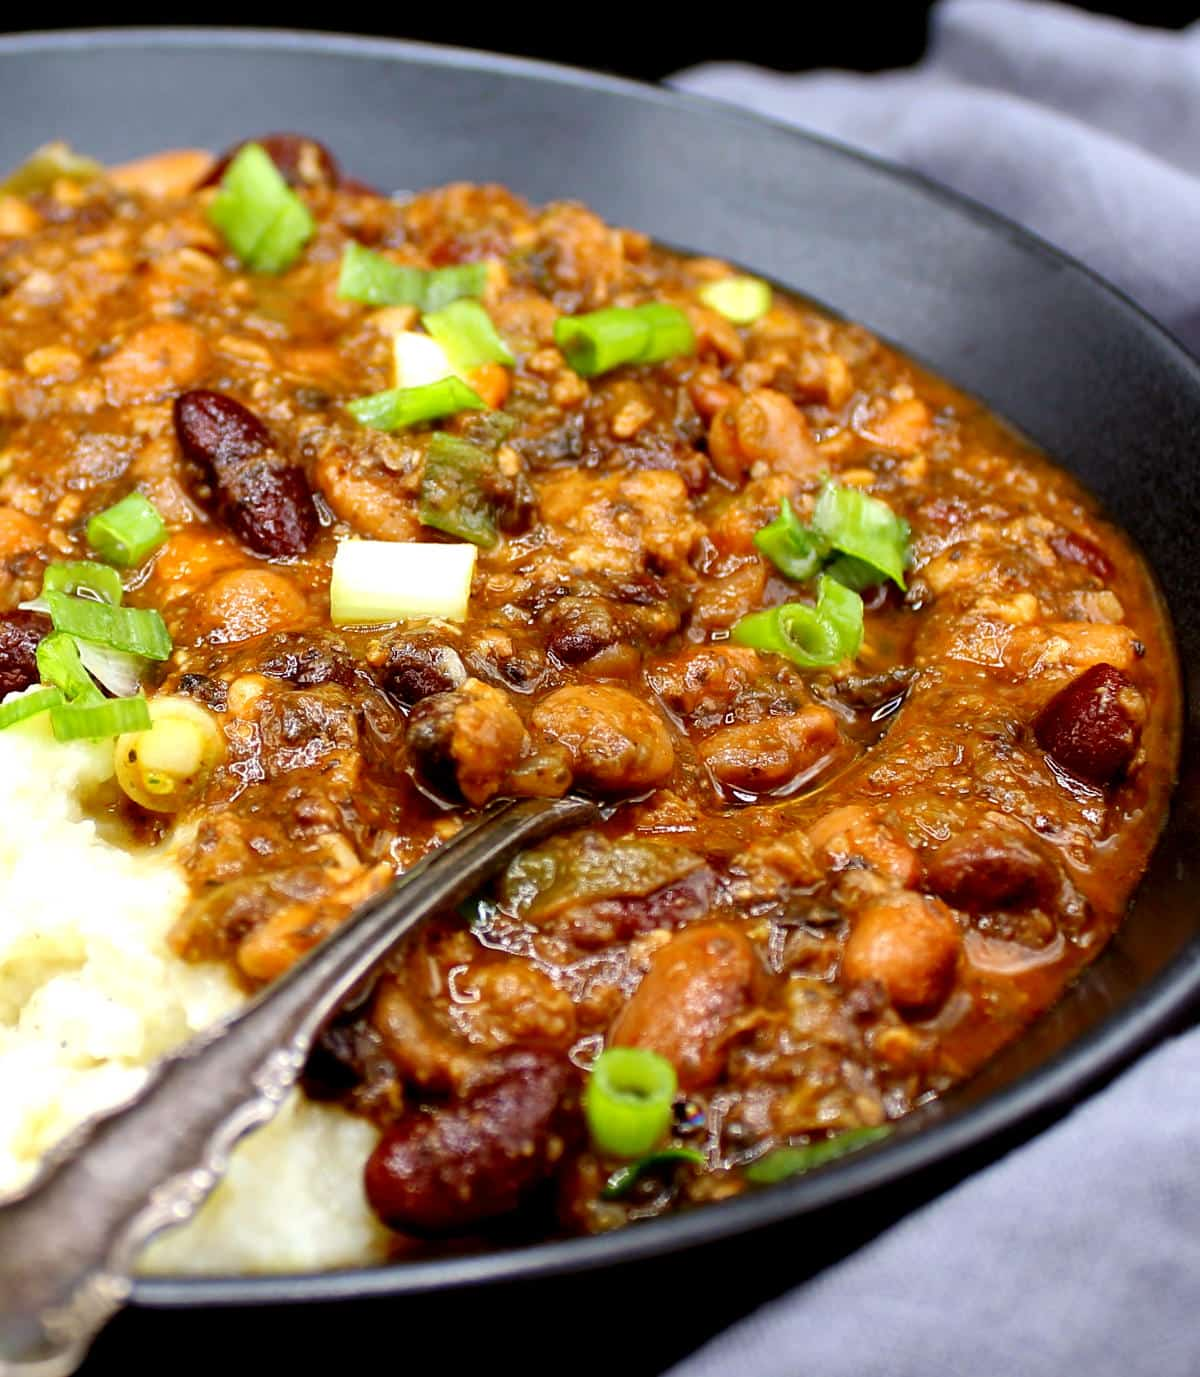 Vegan chili in a black bowl with a spoon and mashed potatoes and spring onions.